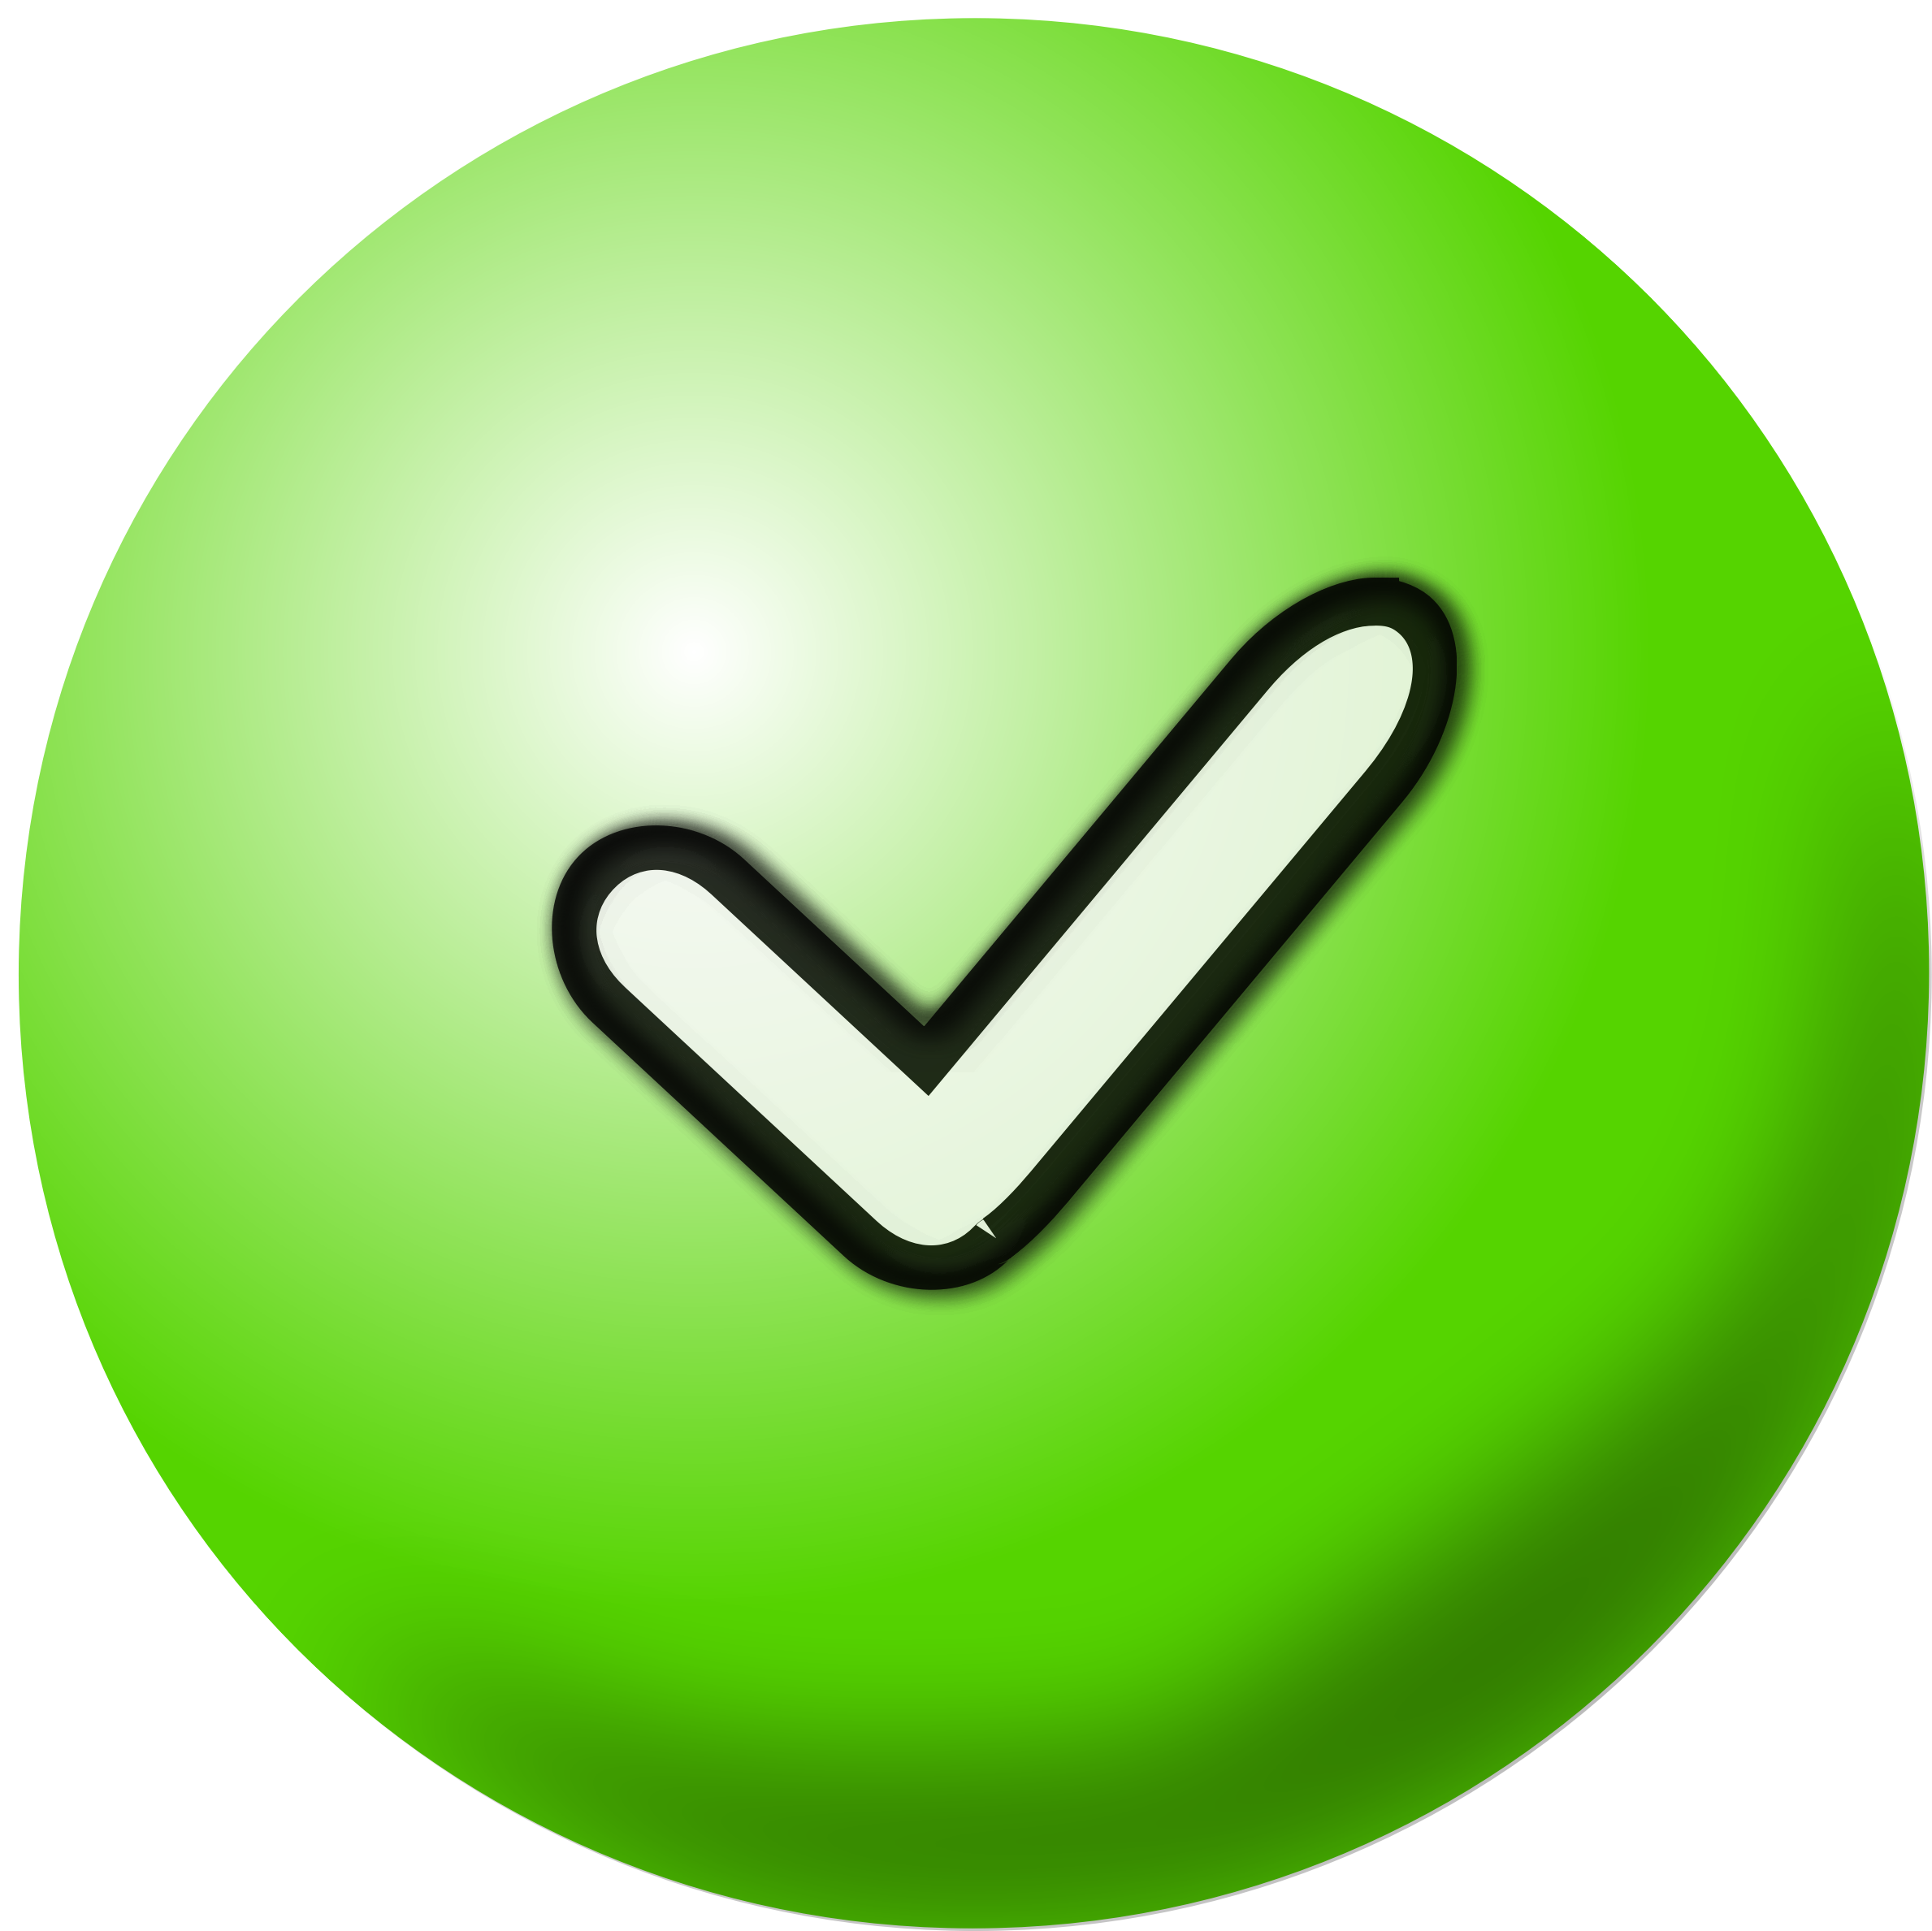 Green check mark icon png. Icons free and downloads